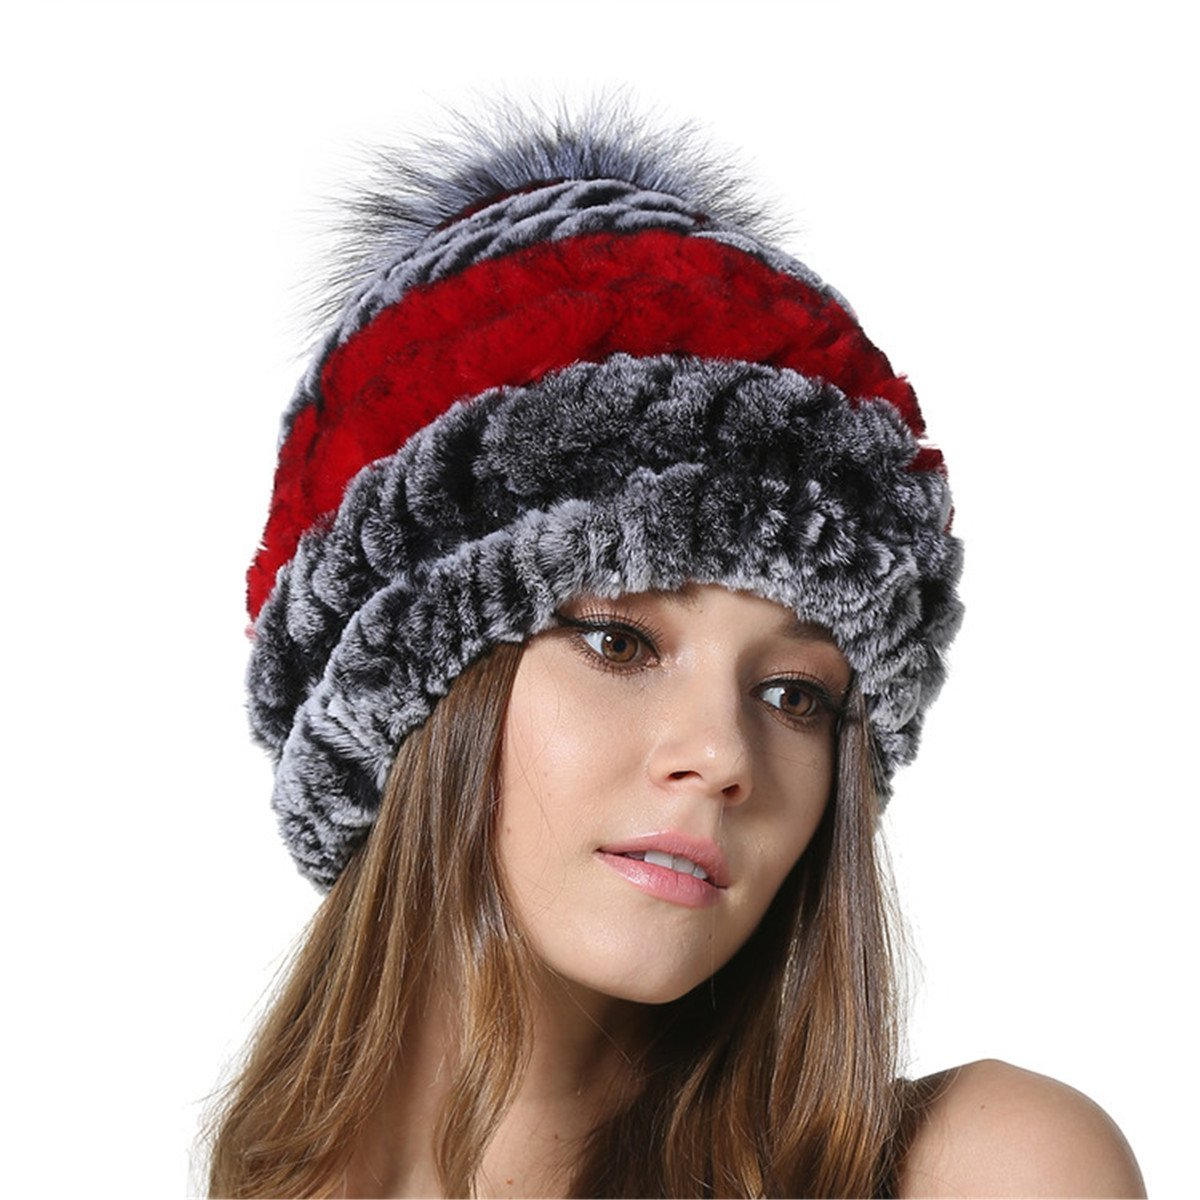 b61c860ea48 MEEFUR Womens Silver Fox Fur Ball Hat Winter Rex Rabbit Fur Knitted Beanies  With Genuine Fur Pom Pom Bobble Red Grey